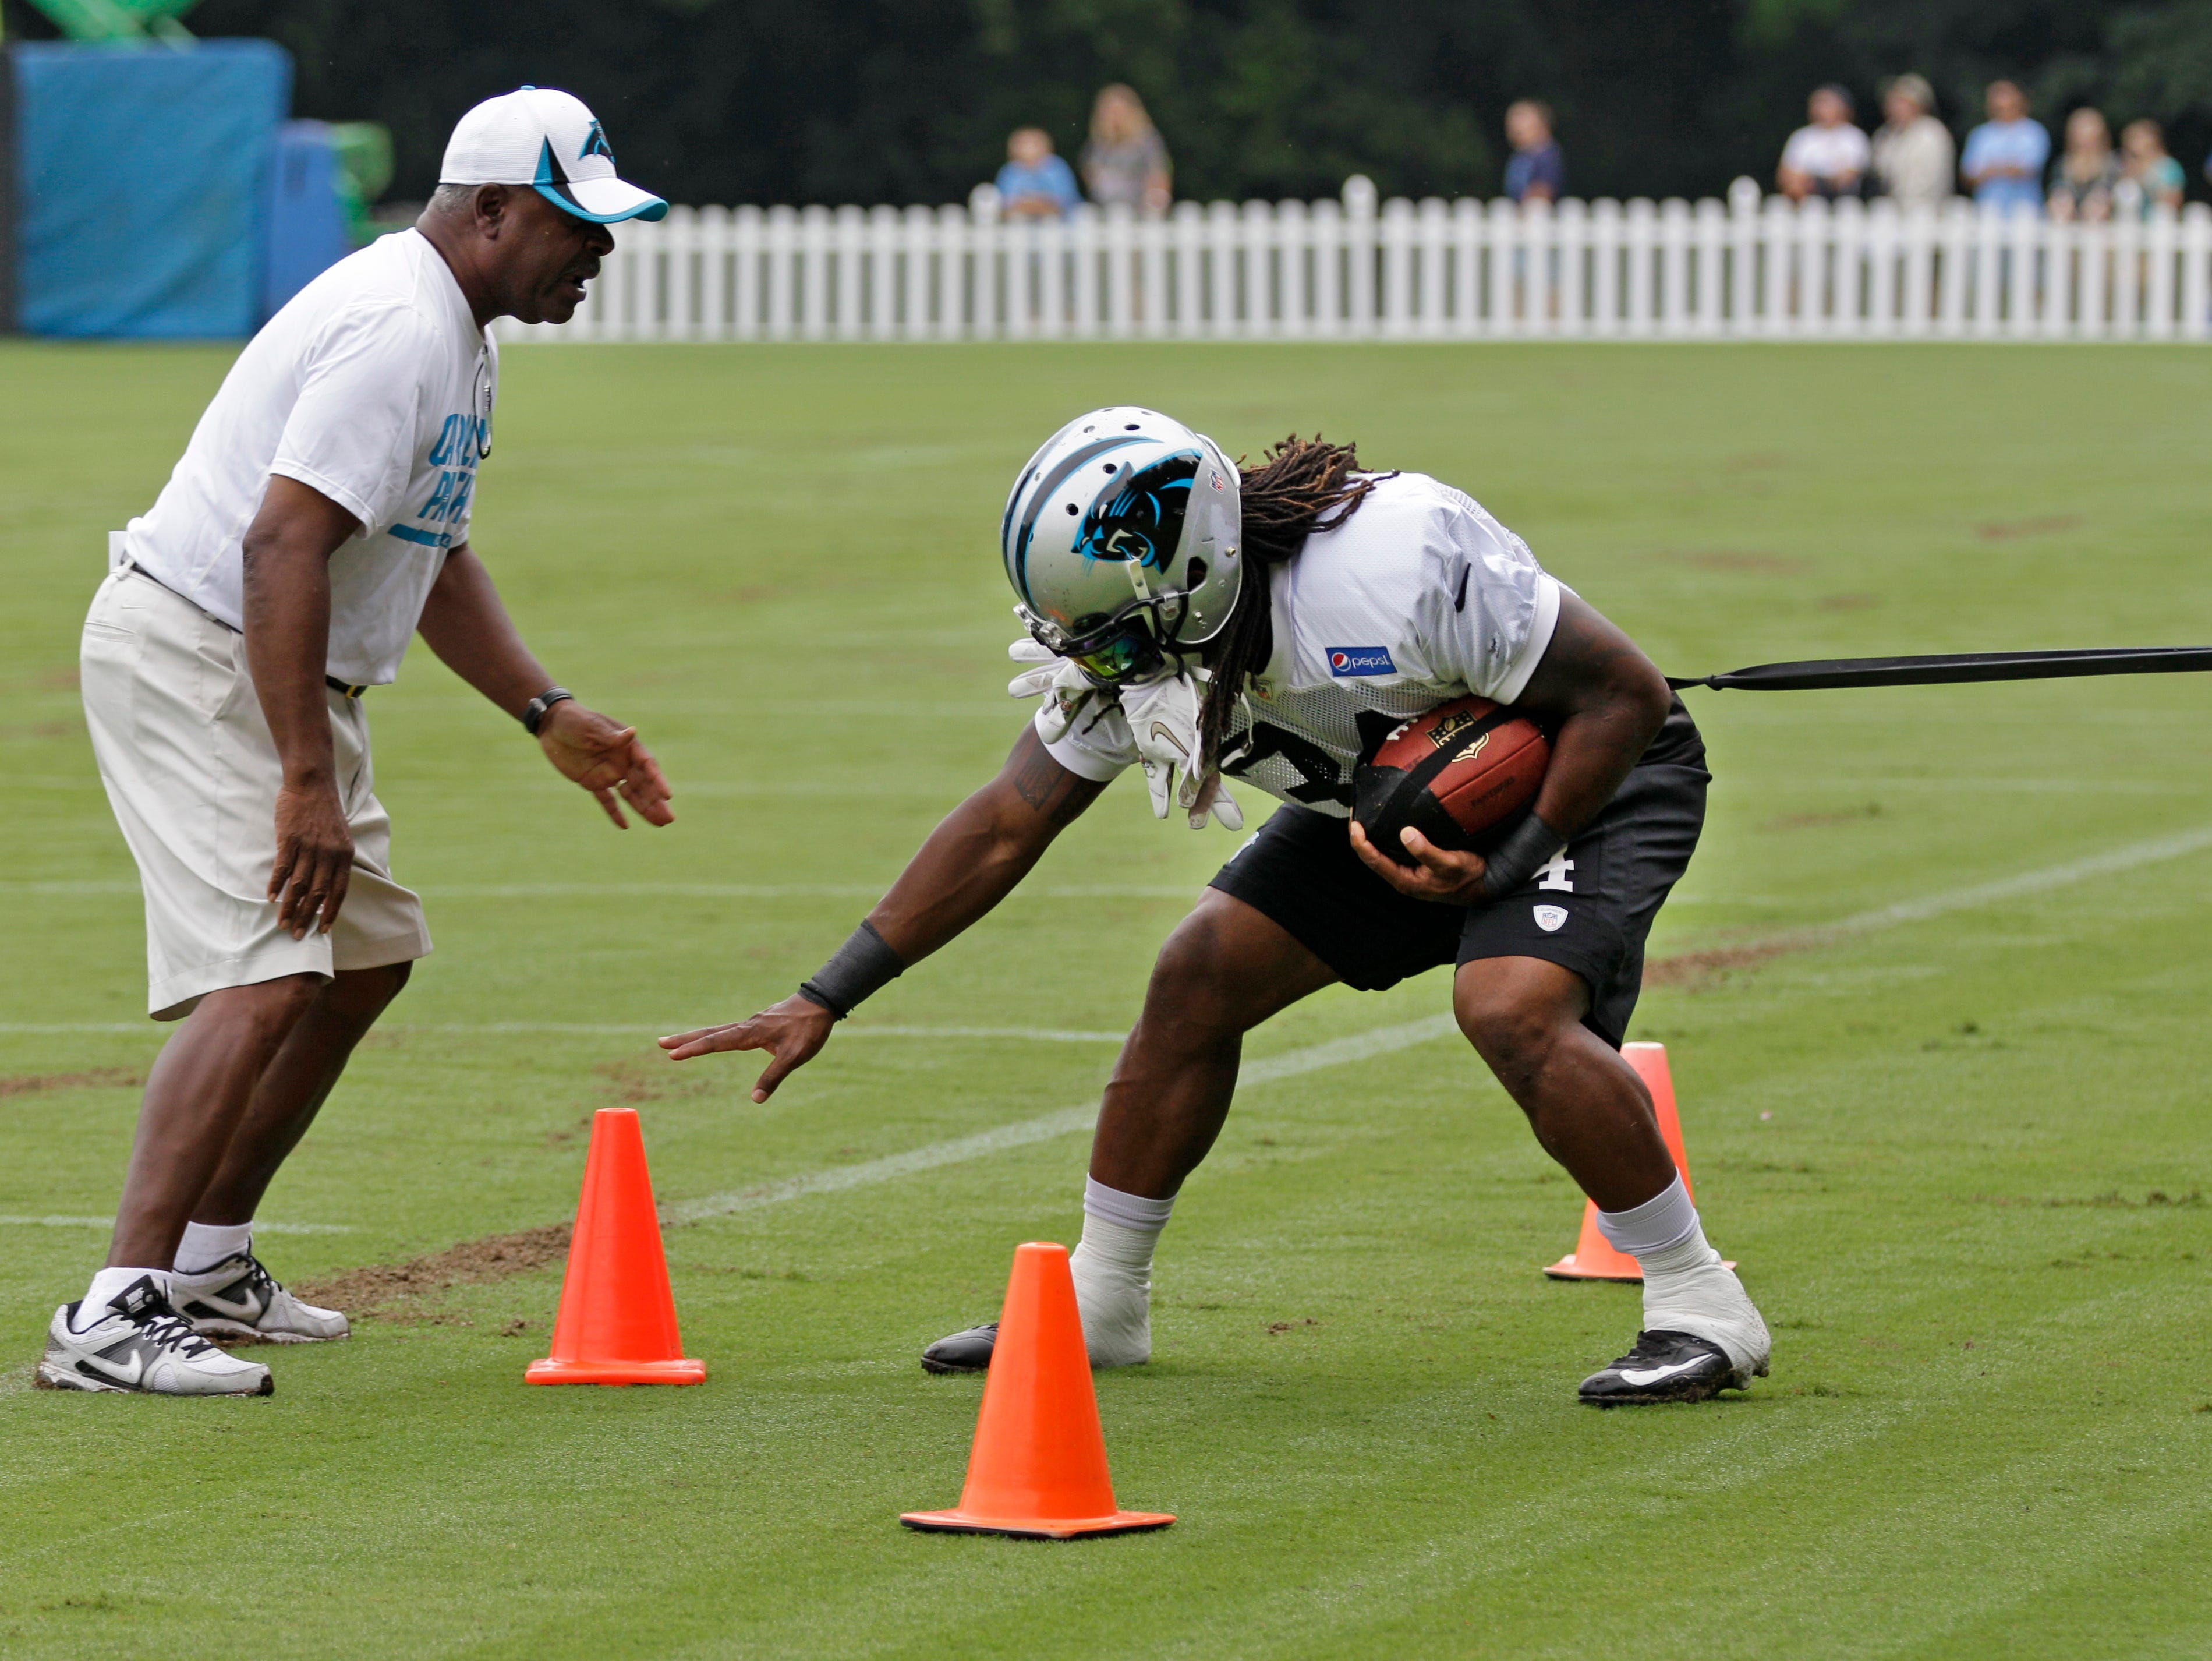 Panthers RB DeAngelo Williams goes through a drill Aug. 7.